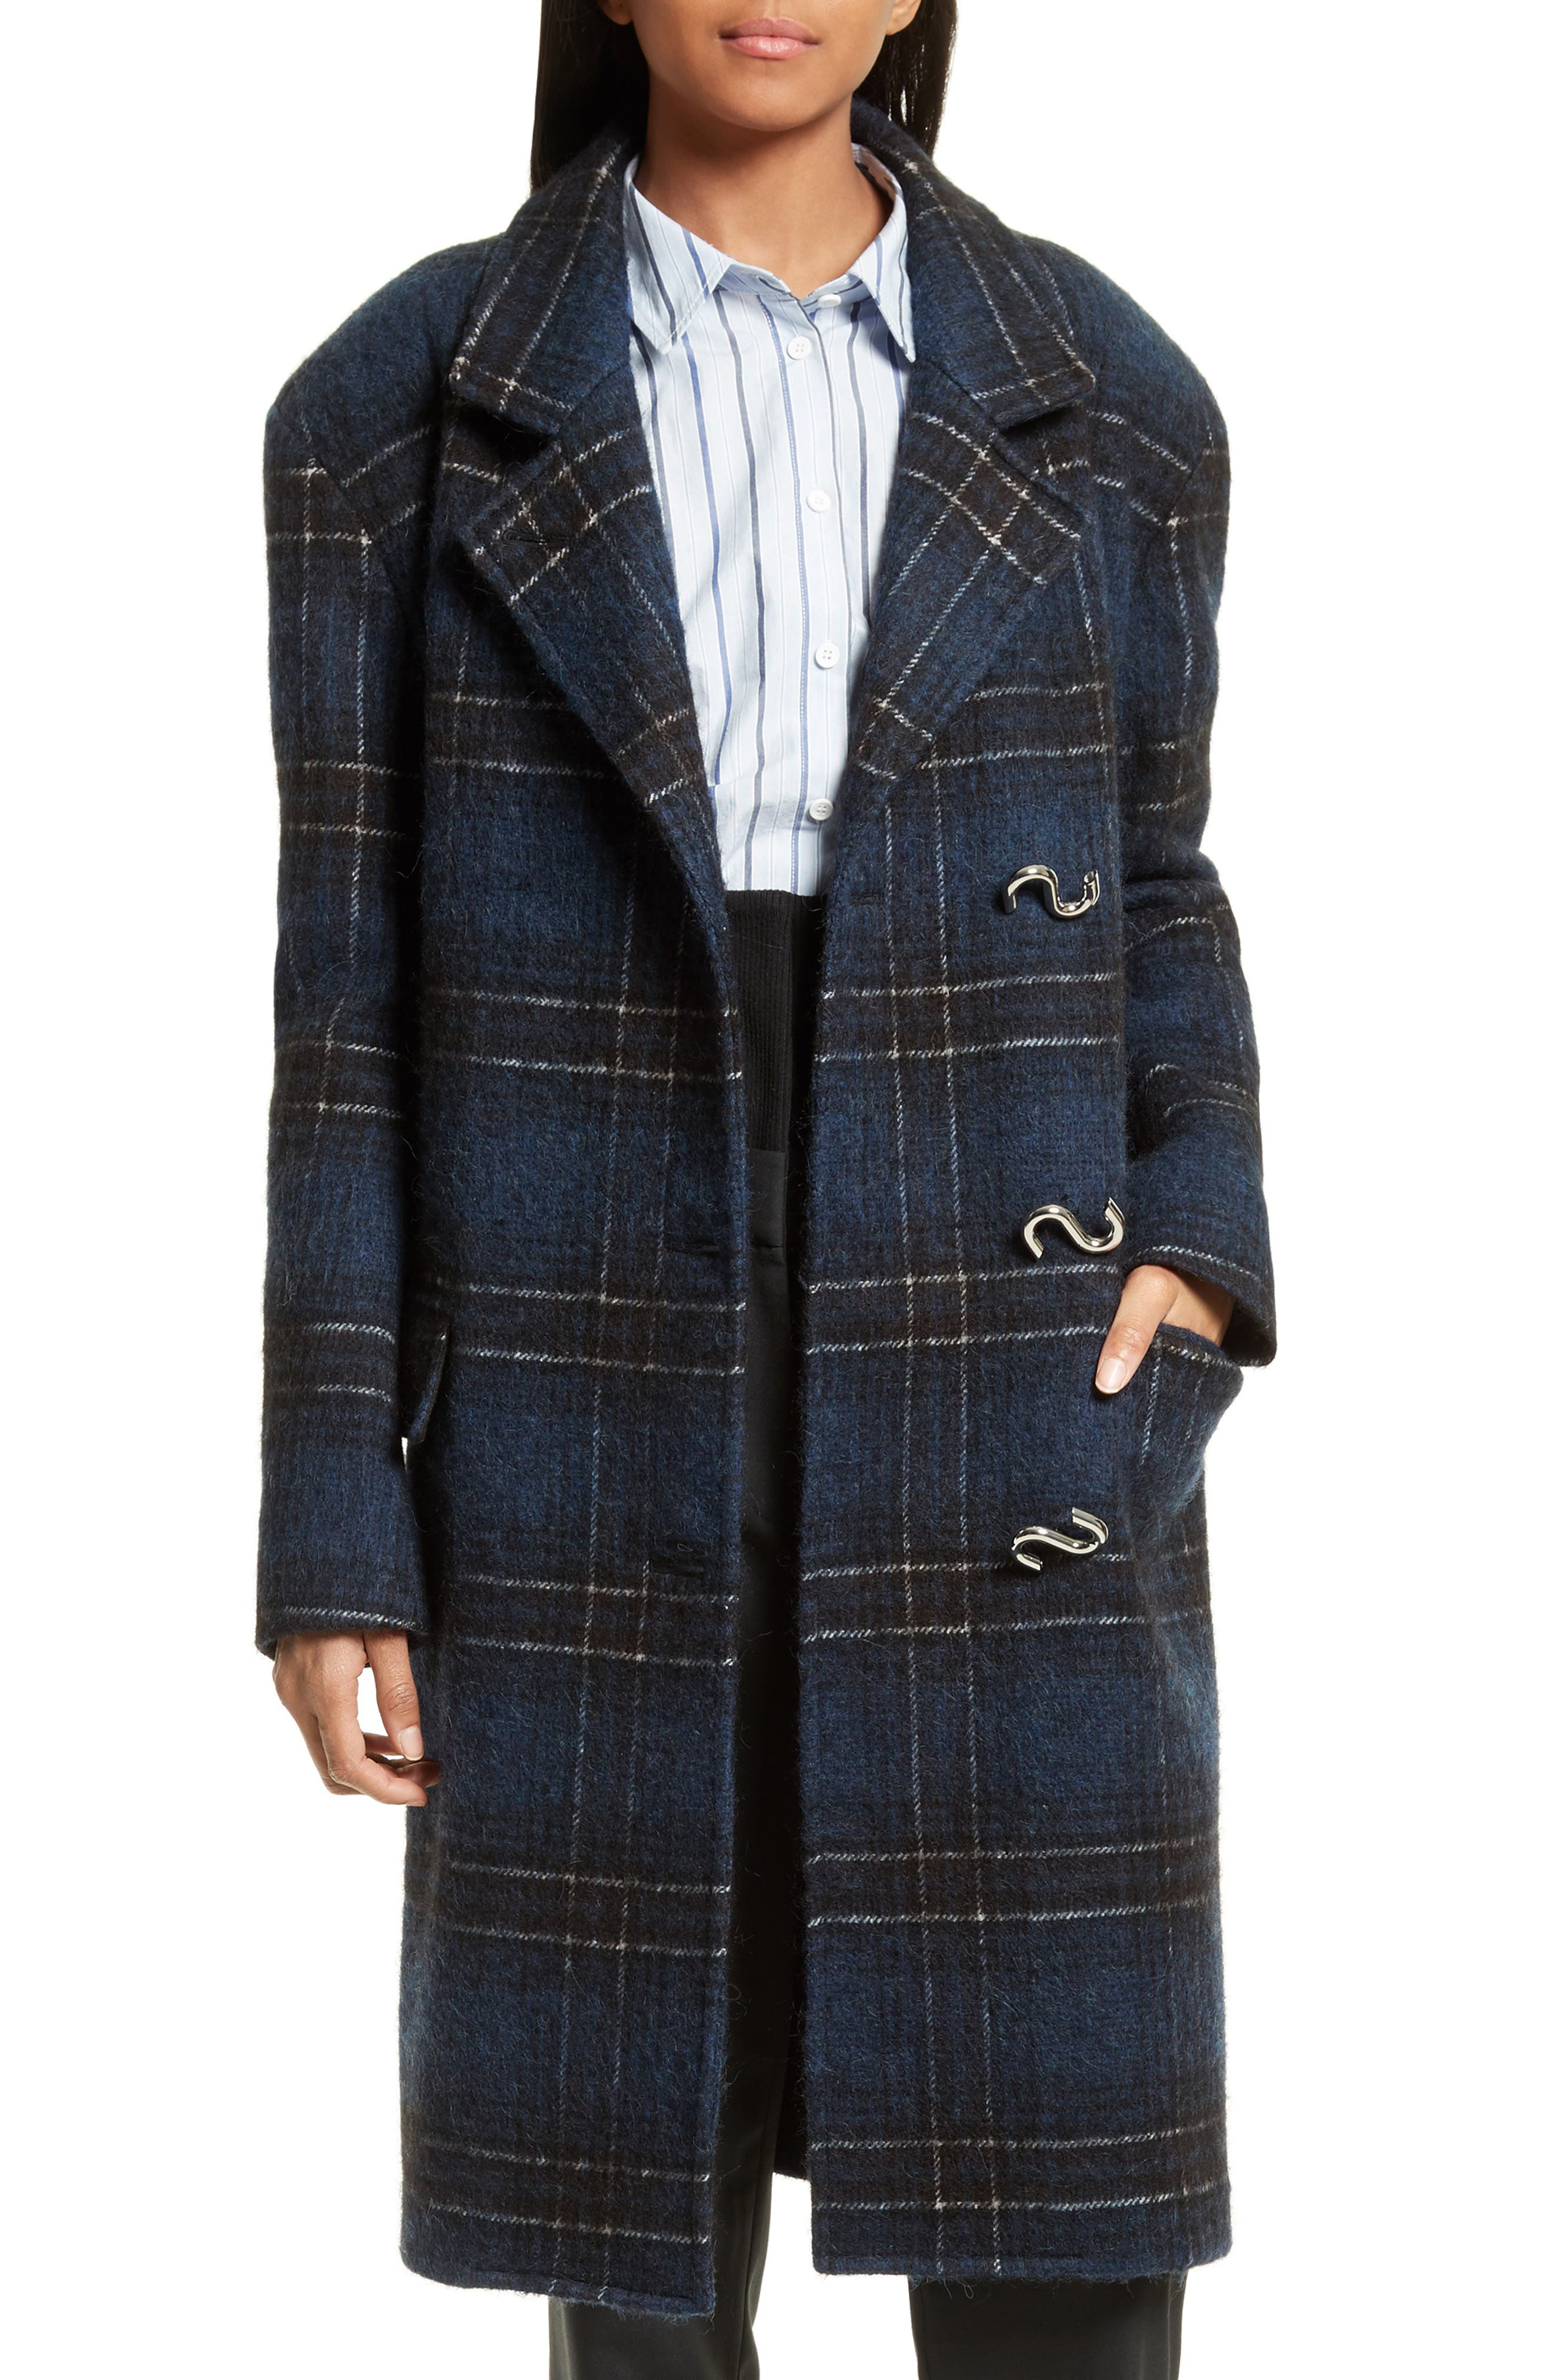 Dominic Plaid Oversize Coat,                             Main thumbnail 1, color,                             402